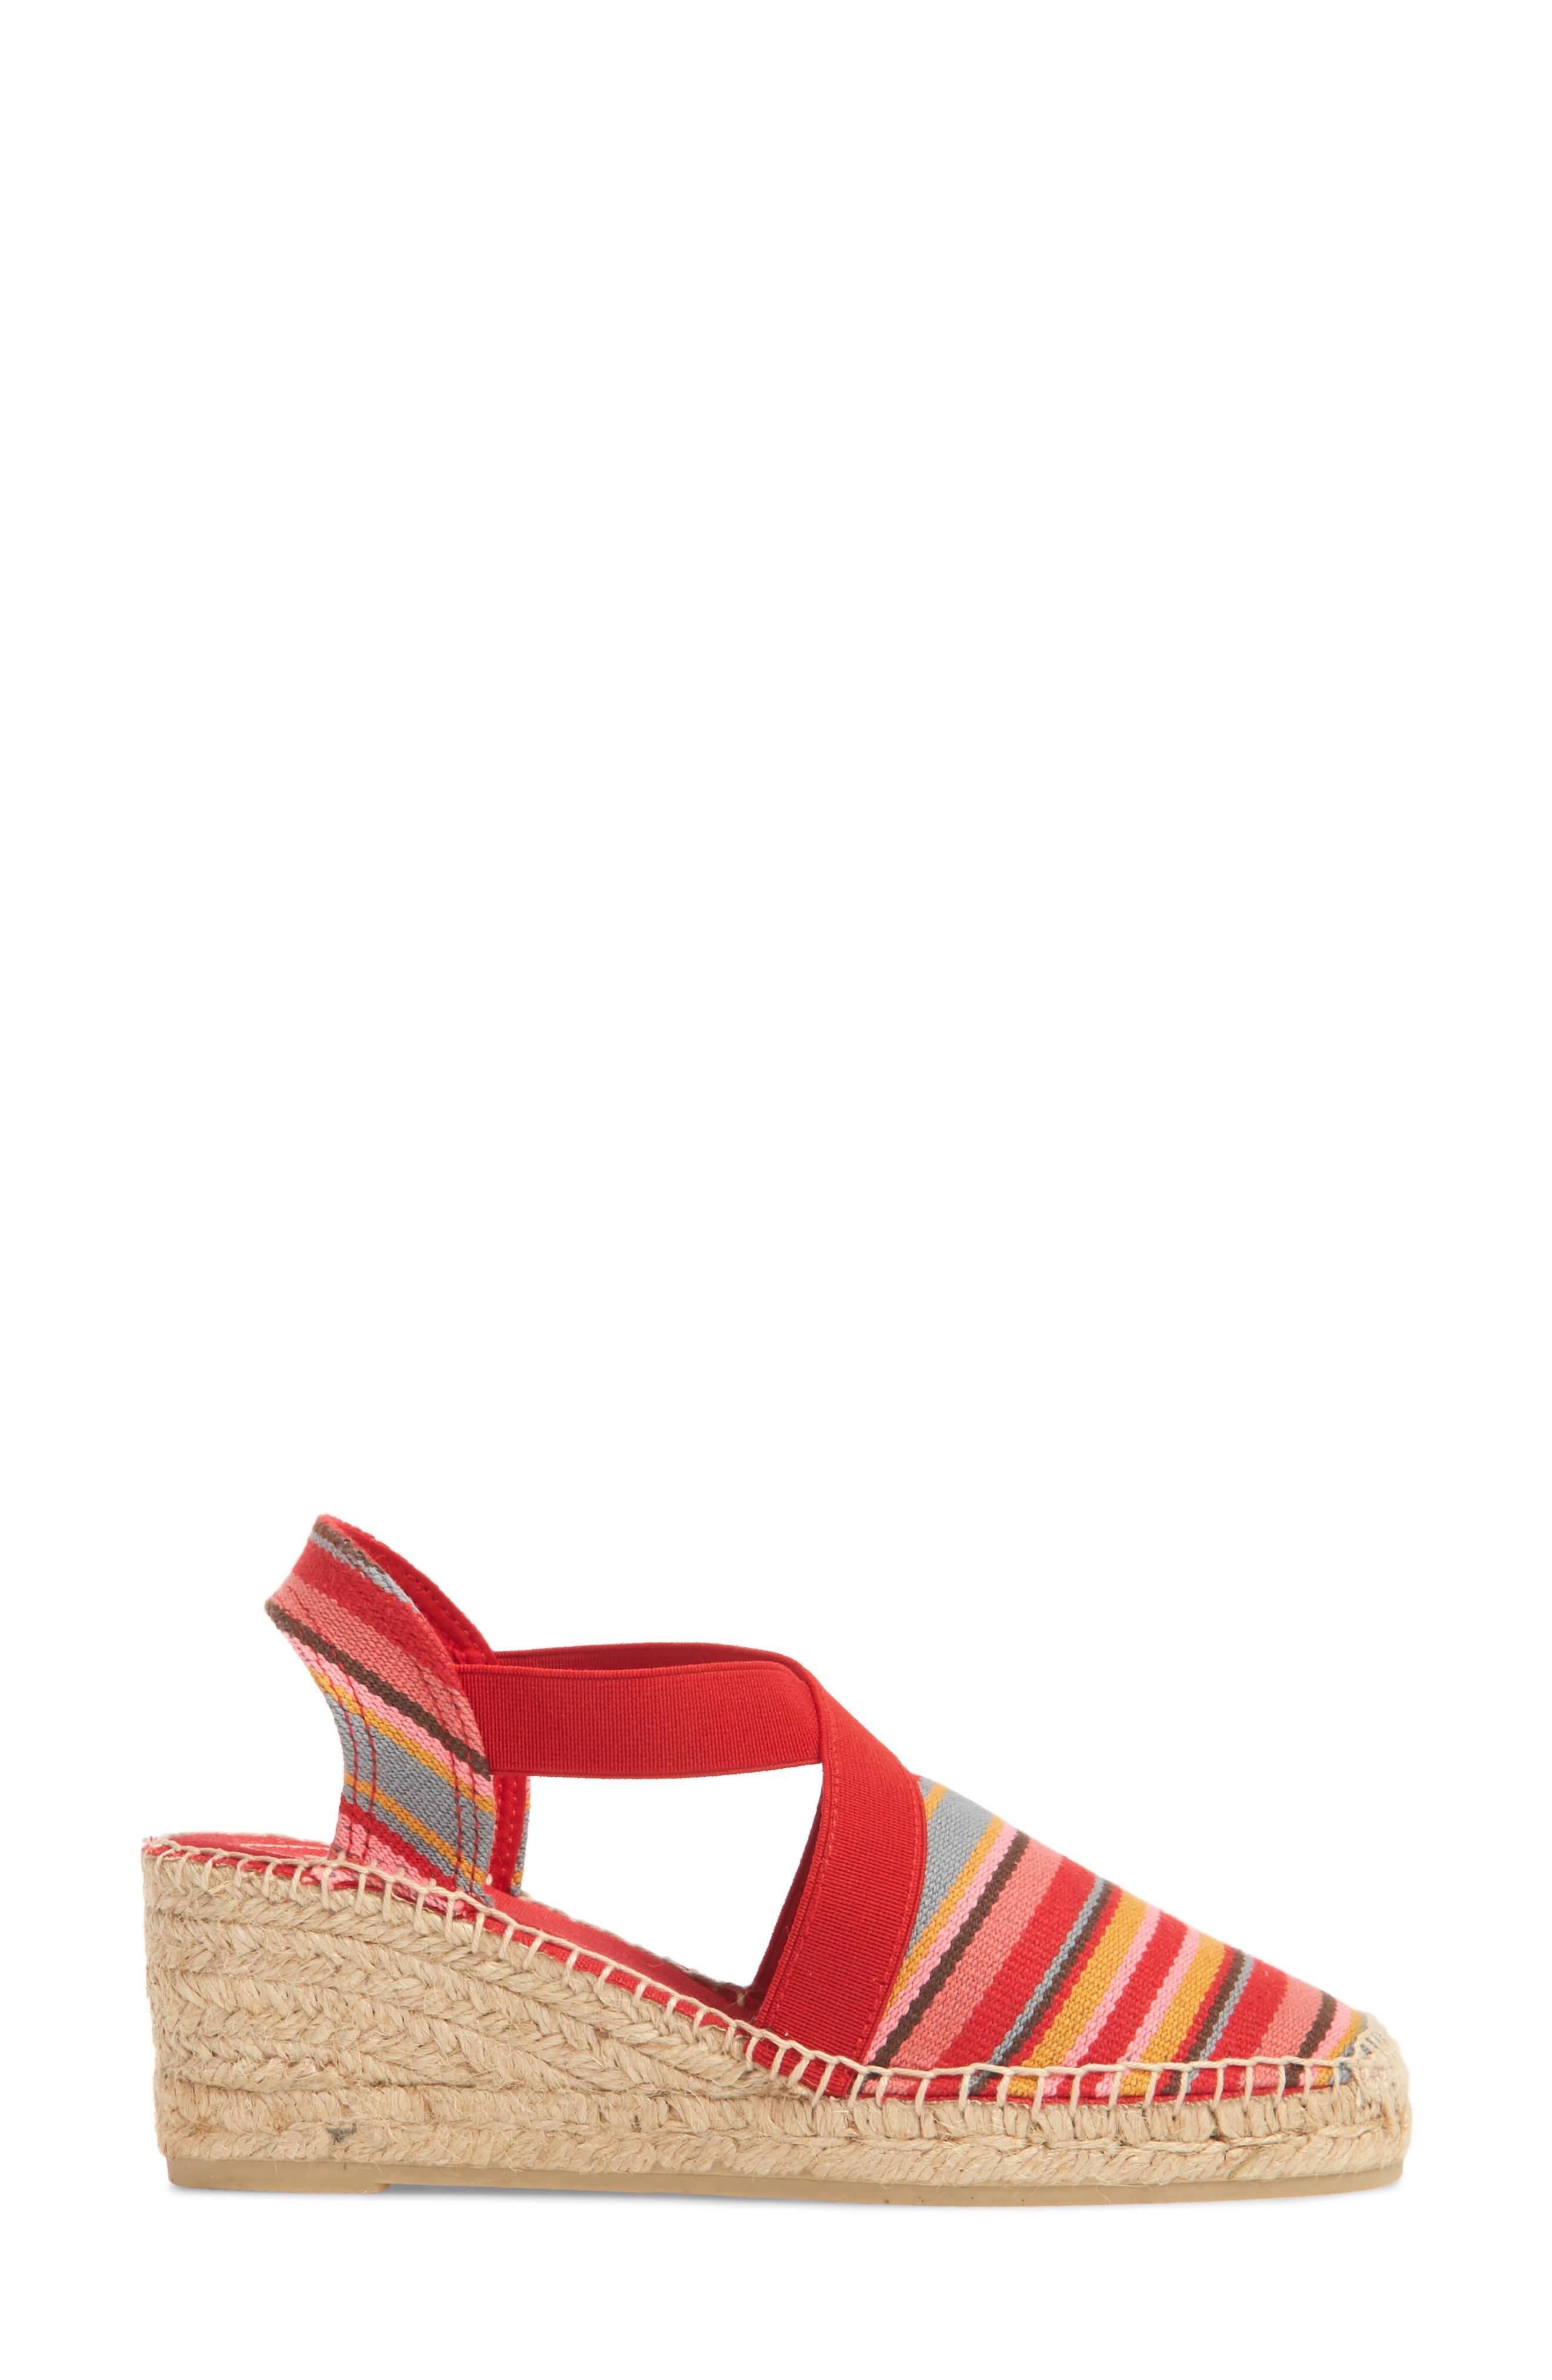 'Tarbes' Espadrille Wedge Sandal,                             Alternate thumbnail 3, color,                             Red Fabric